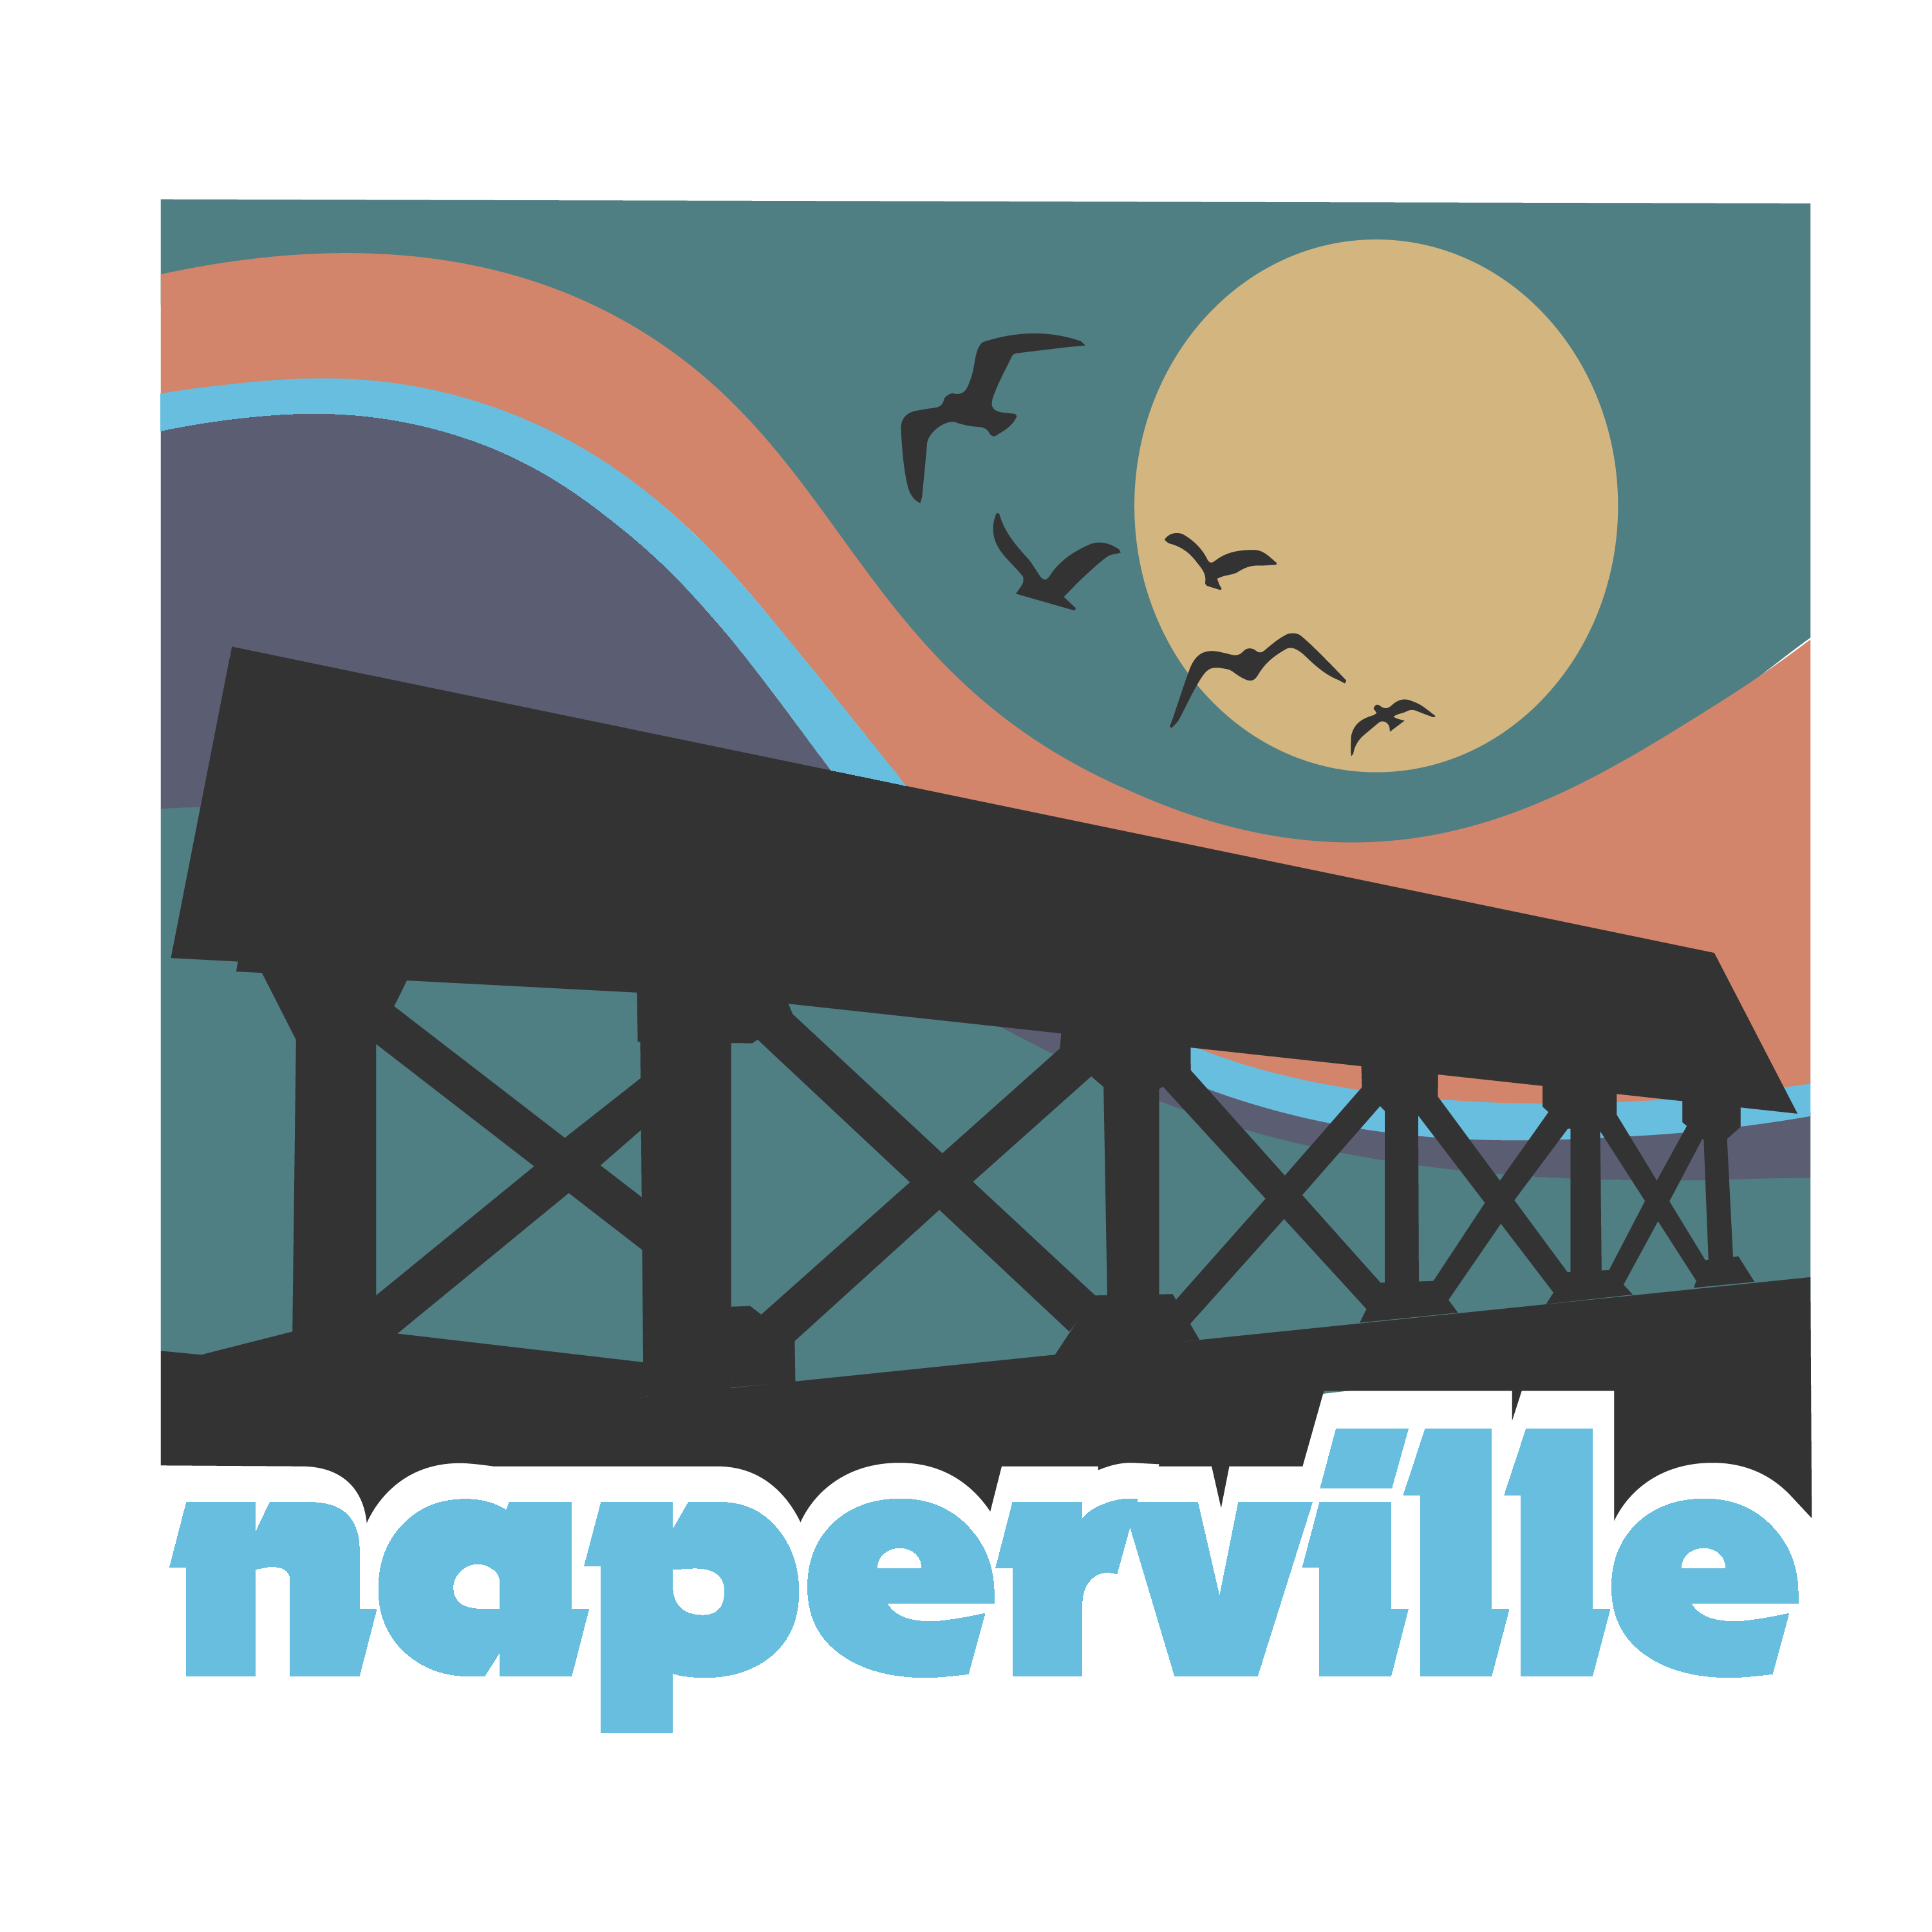 Naperville 1970s Blue Naperville Fixed Bridge and Sky. Naperville, IL logo in a vintage 1970s style.